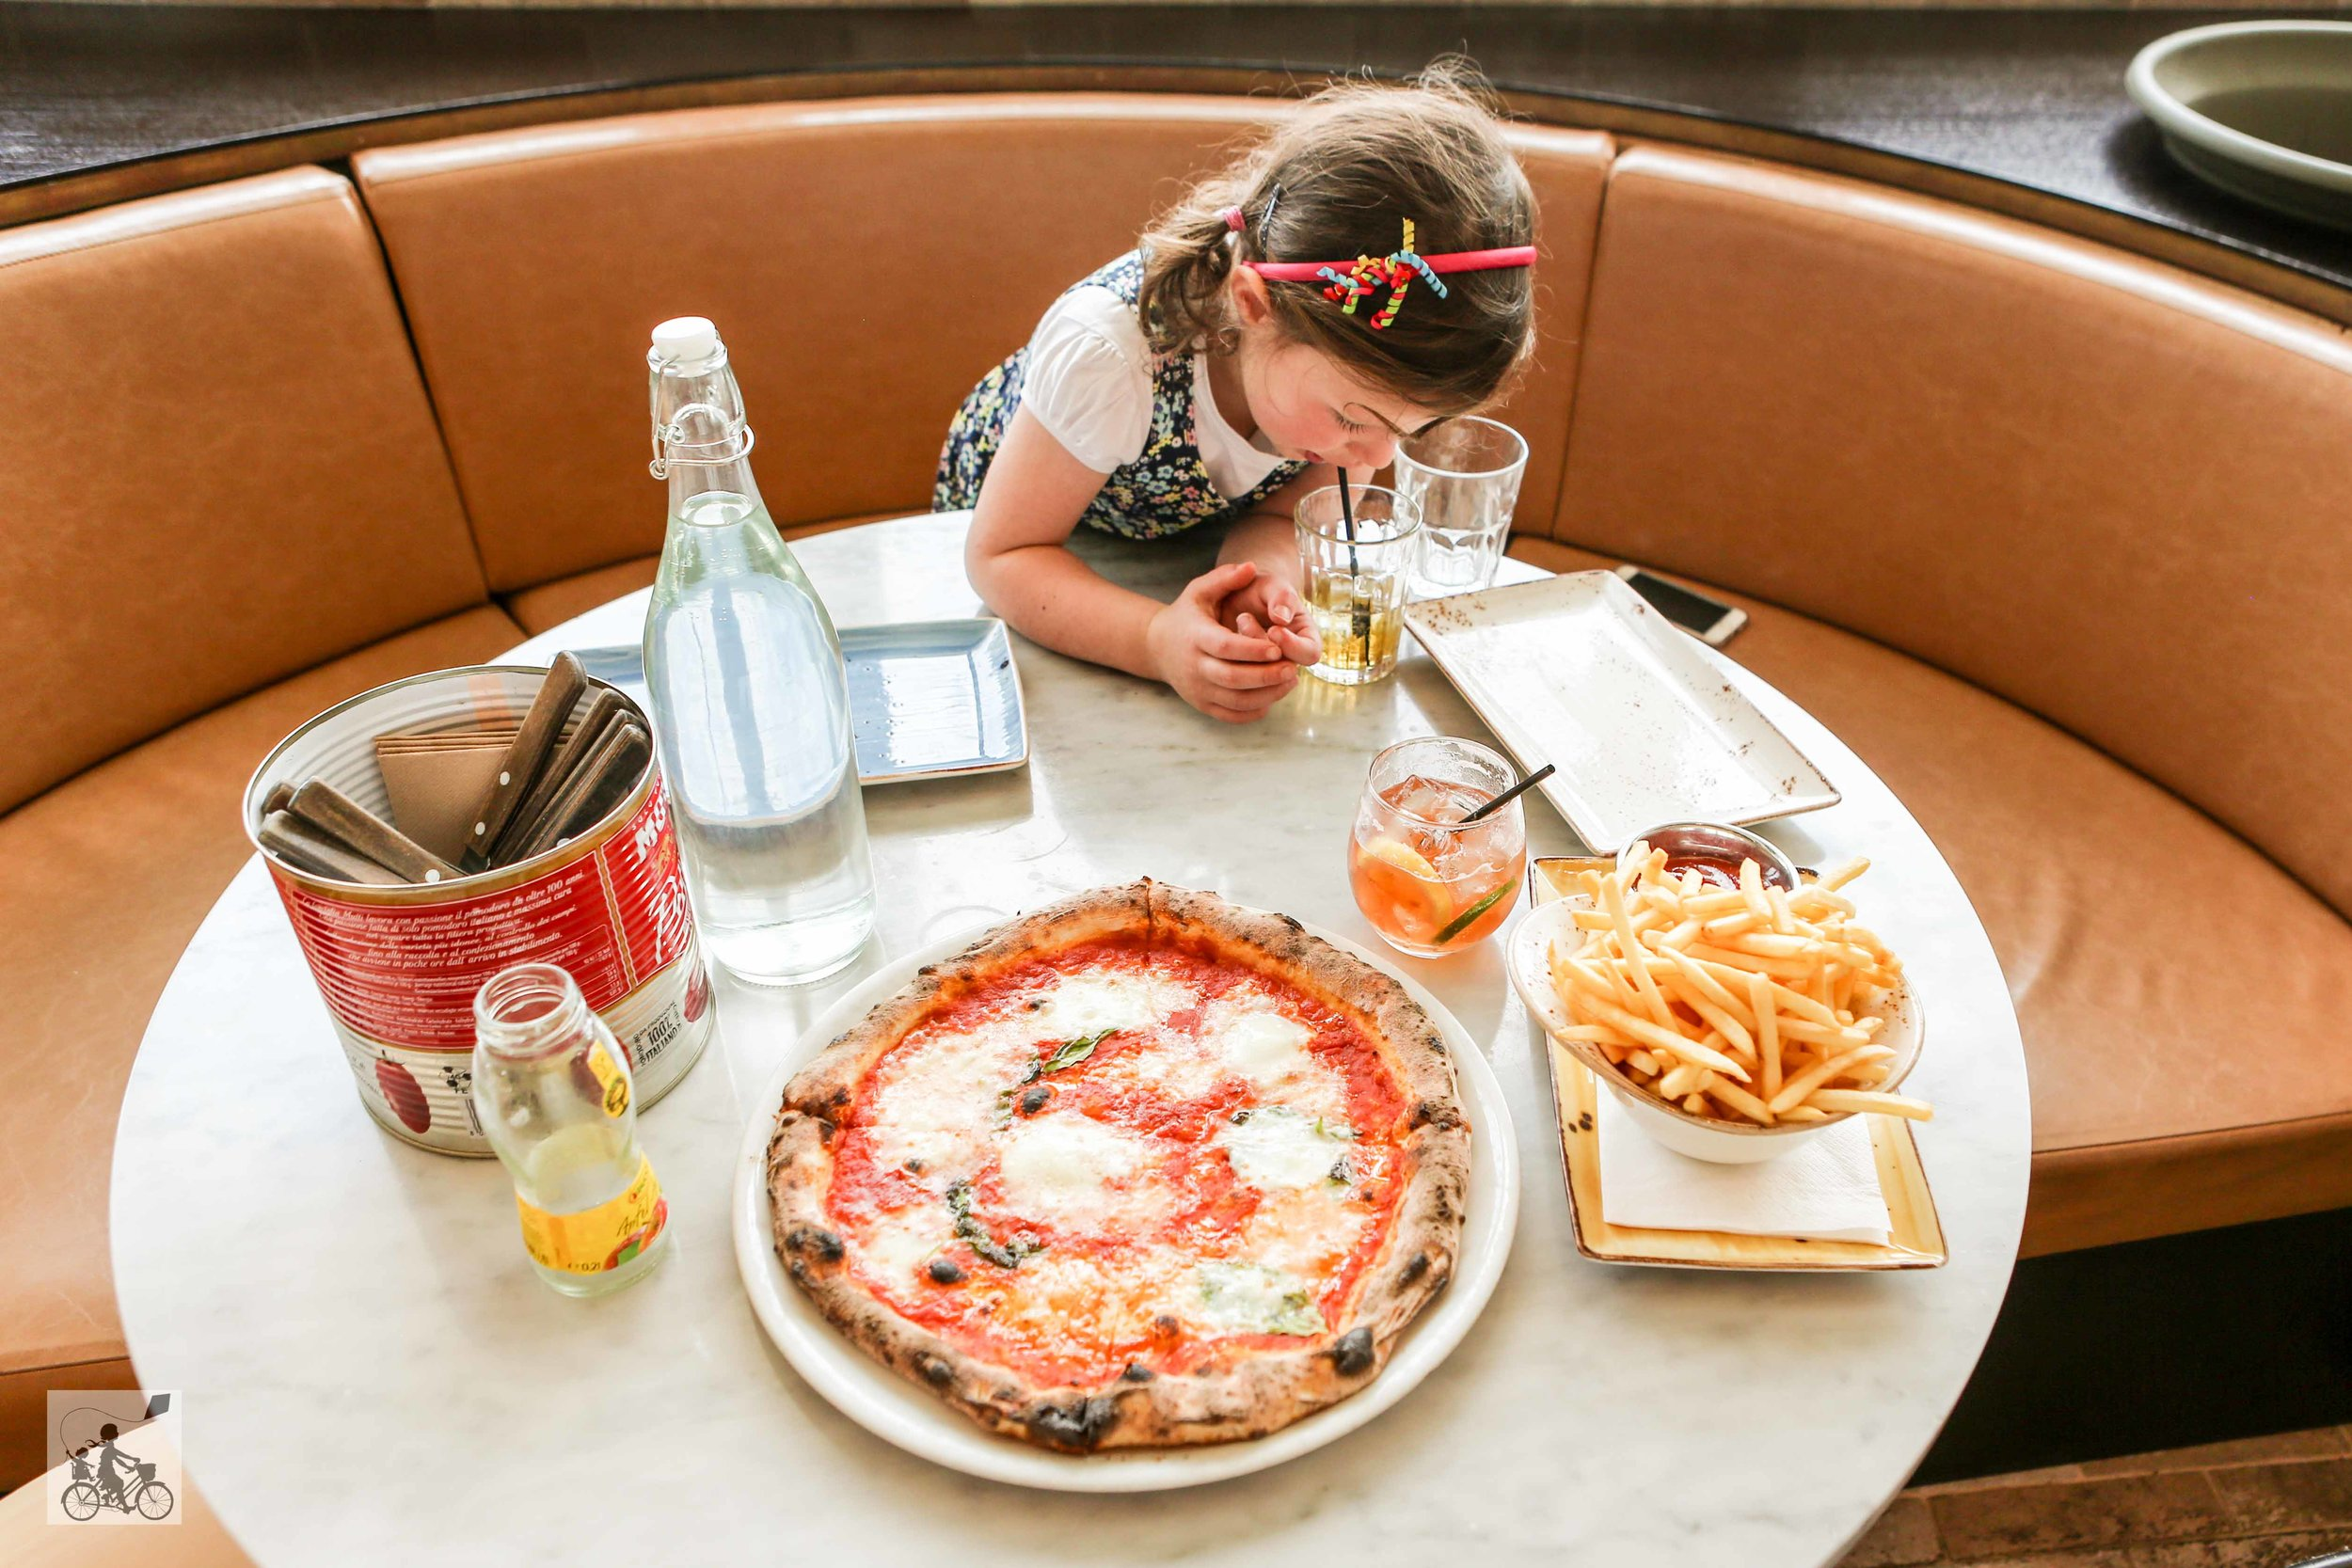 Woodstock Pizza - Mamma Knows East (7 of 13).jpg